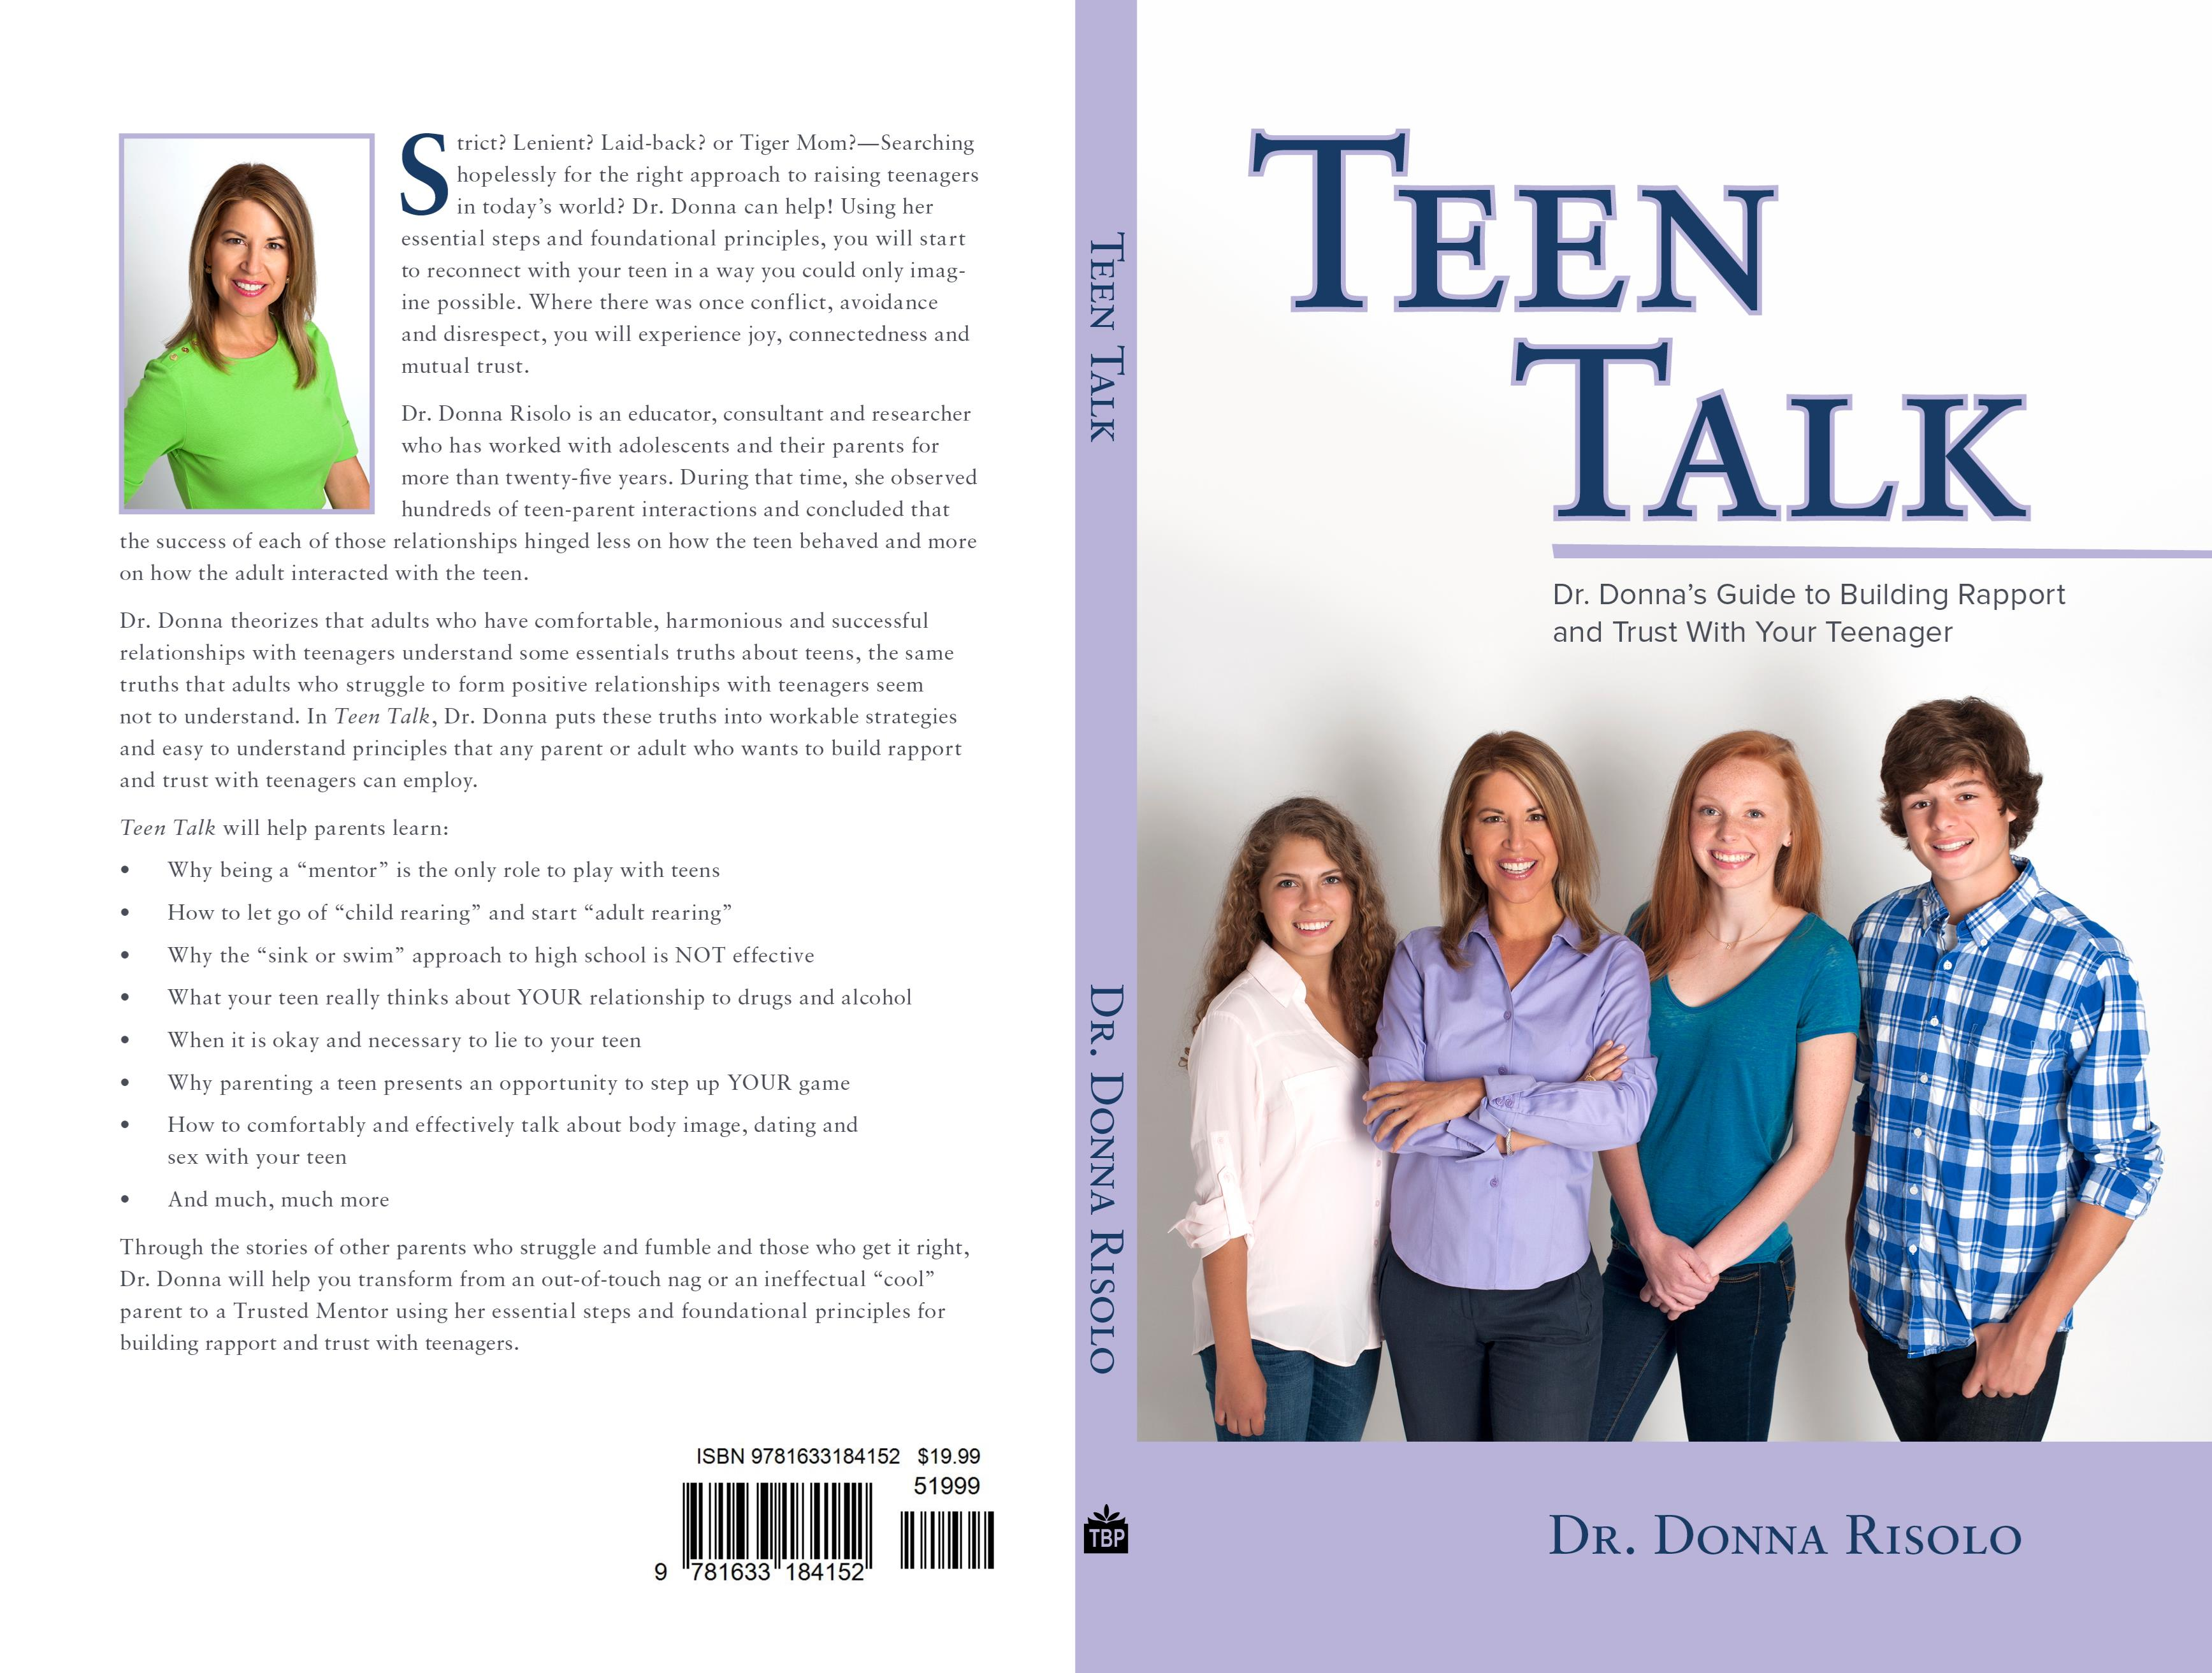 Teen Talk cover image